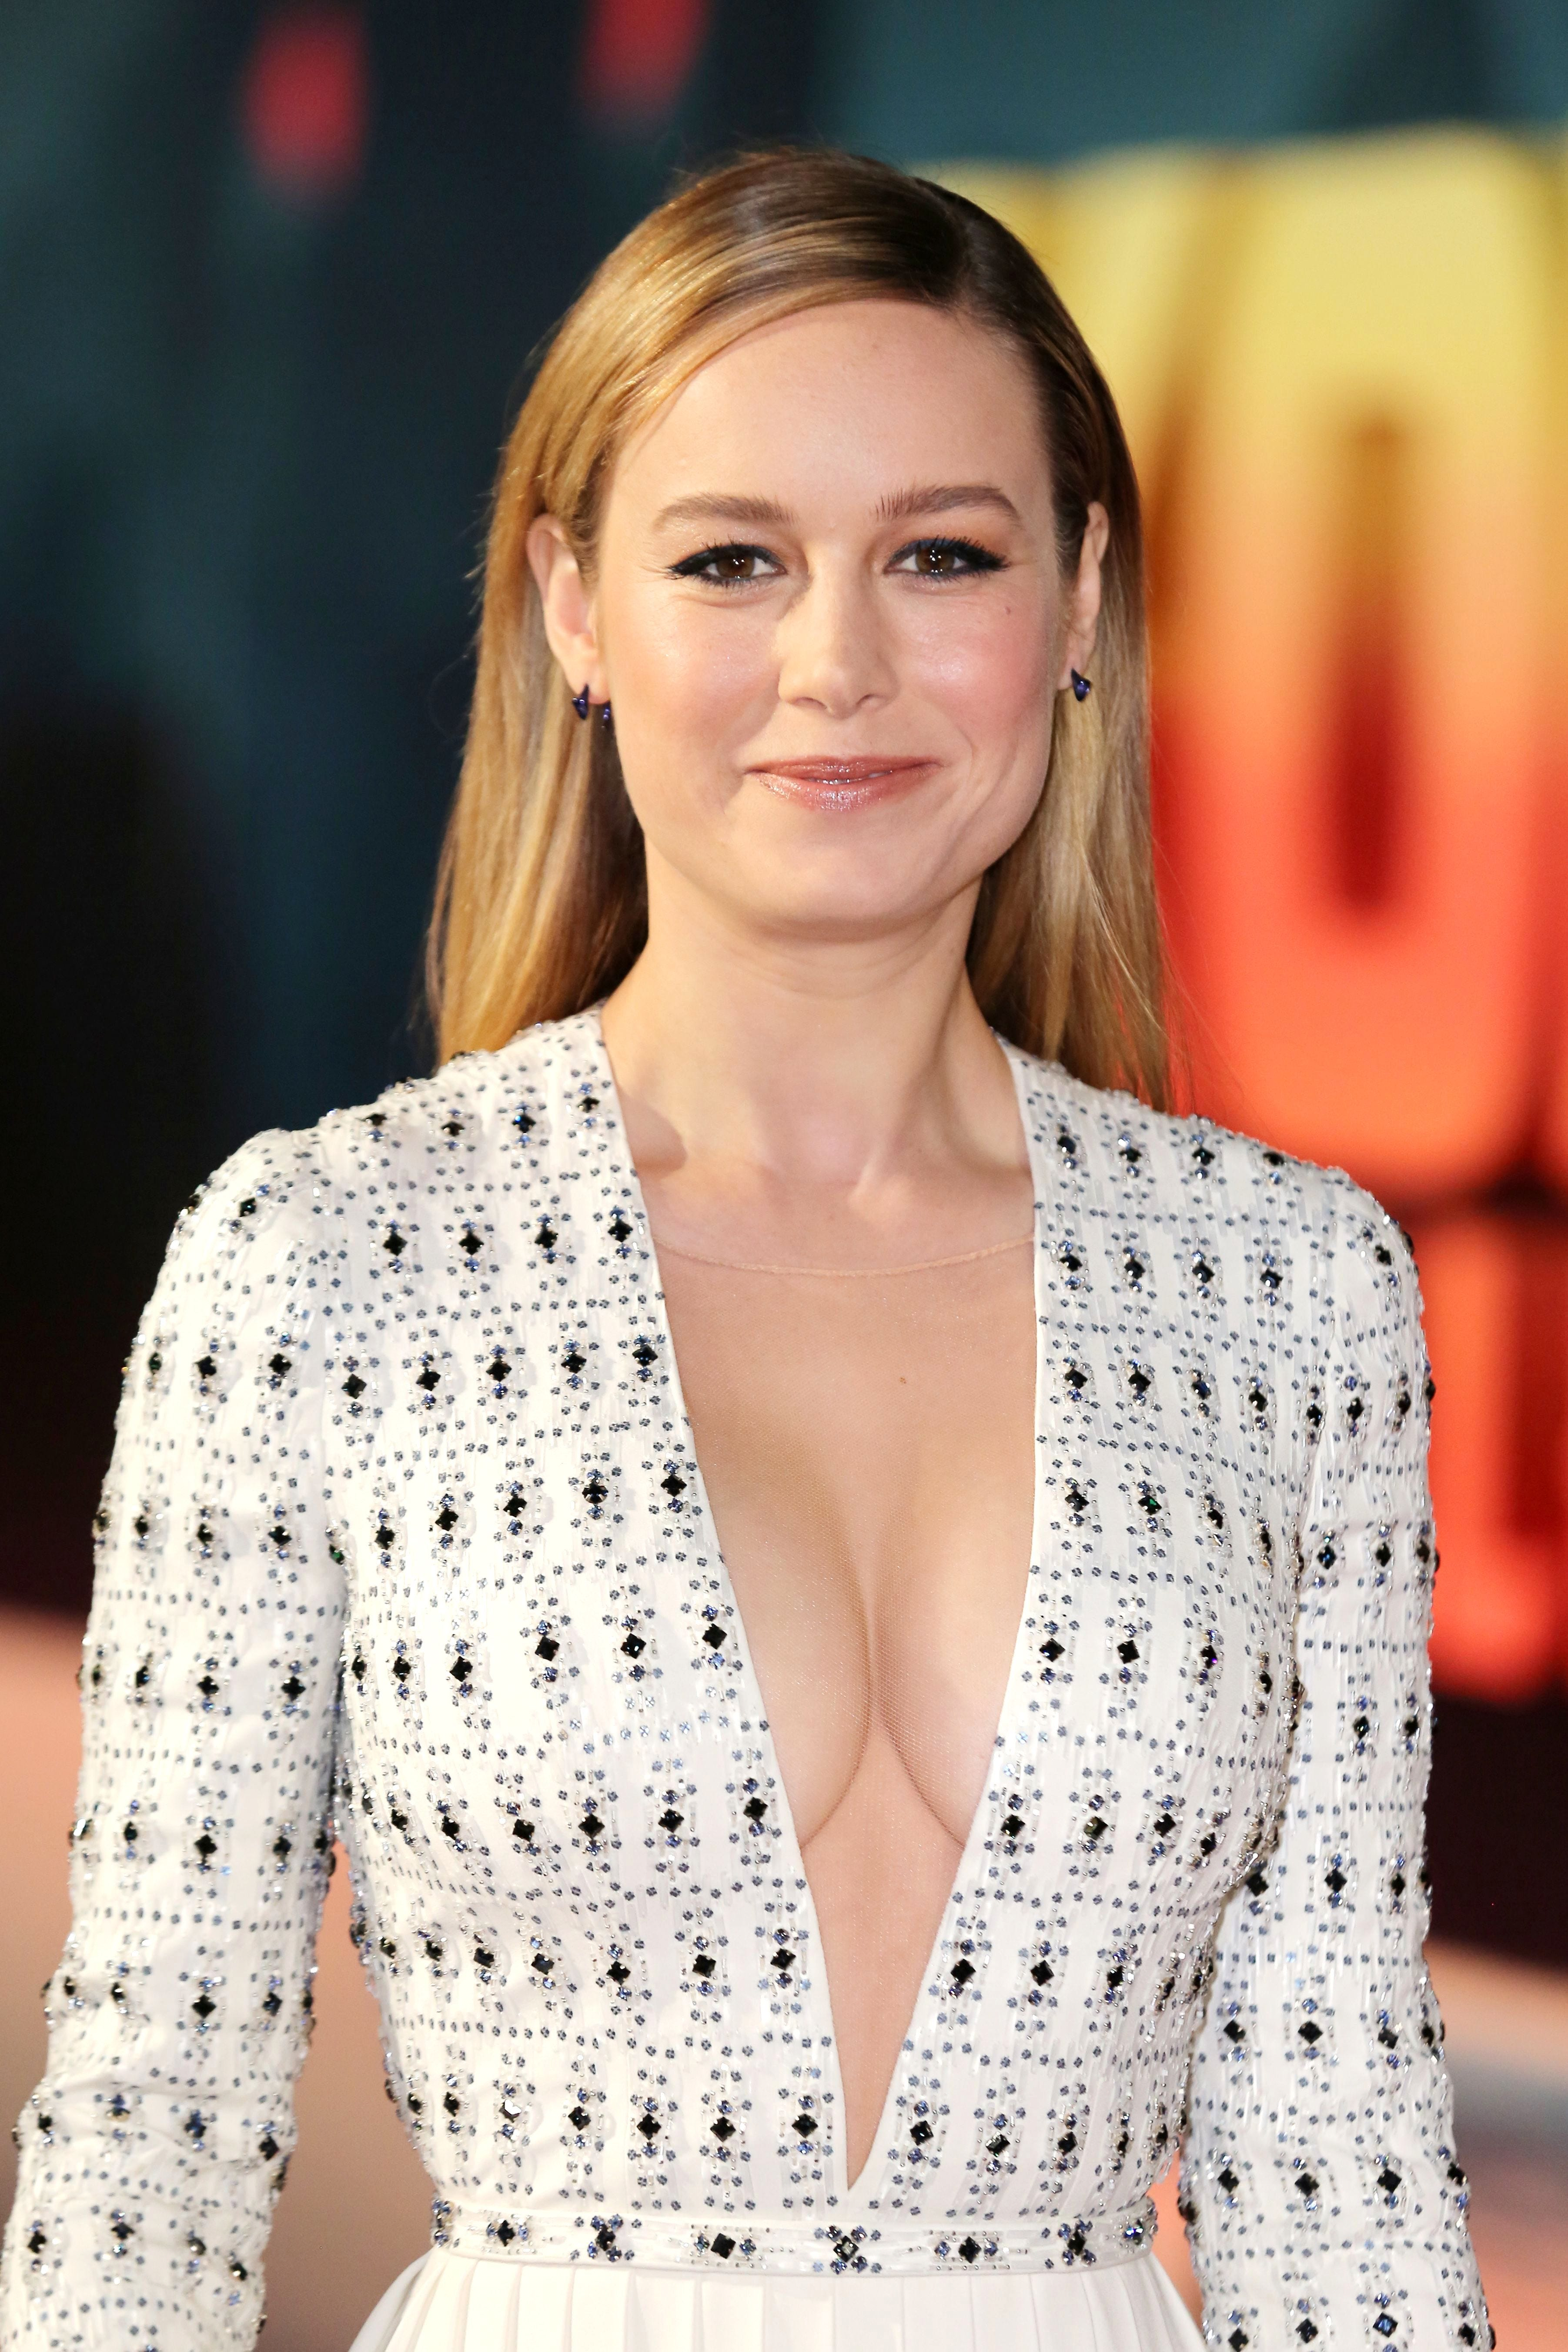 Twitter Trolls Attacked Brie Larson Over A Her Low Cut Outfit  amp  It s